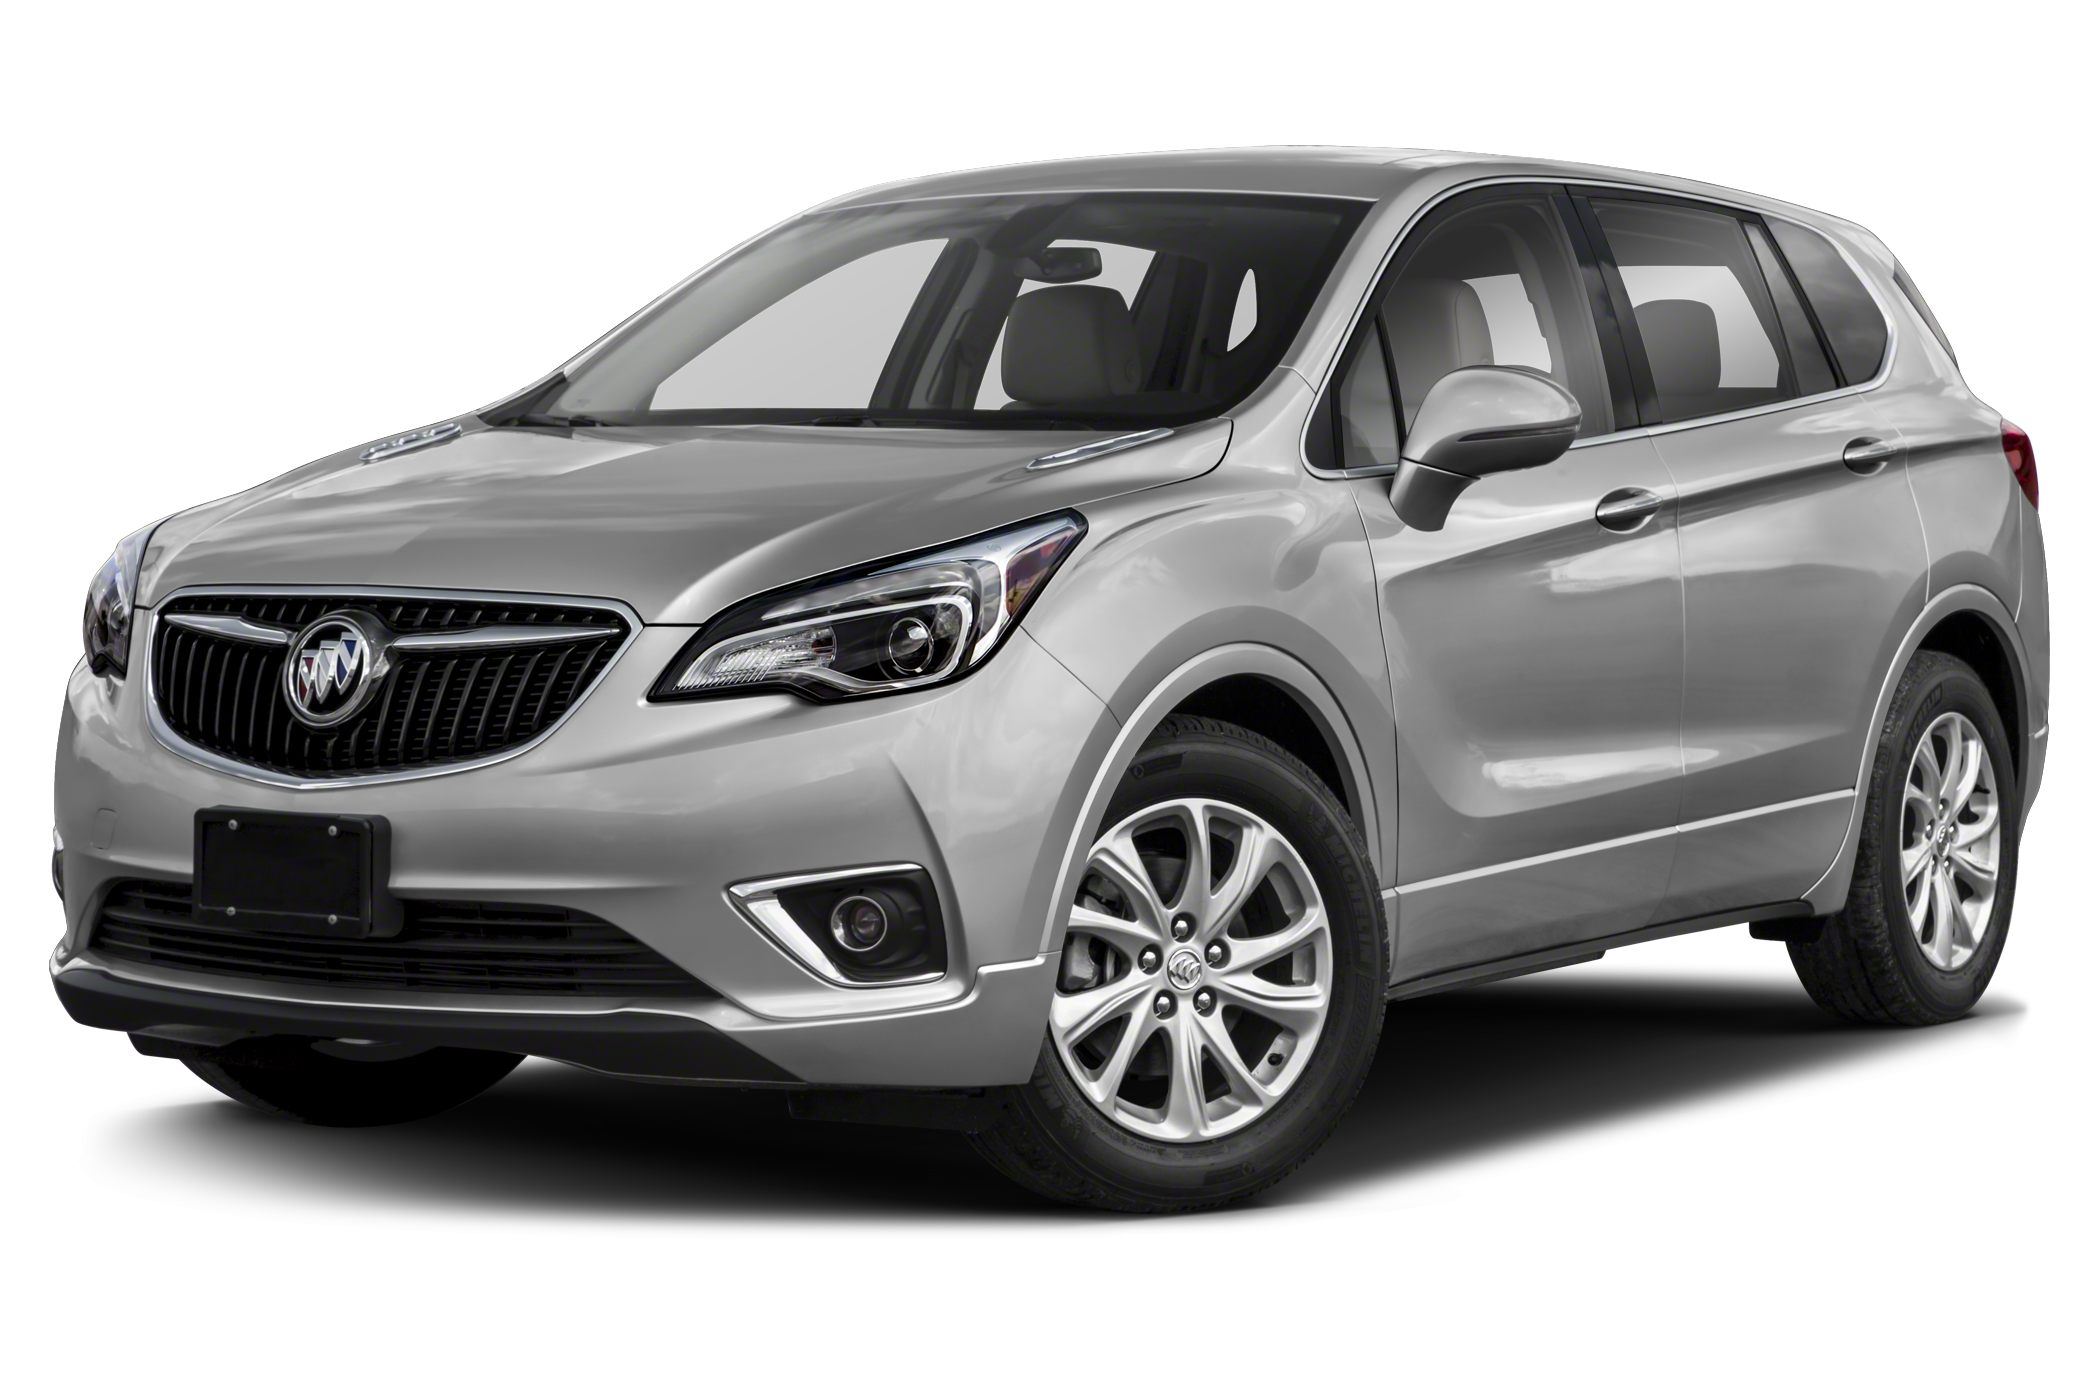 Buick Envision Interior Just As Nice As Its Exterior | Autoblog 2022 Buick Envision Reliability, Seat Covers, Safety Rating